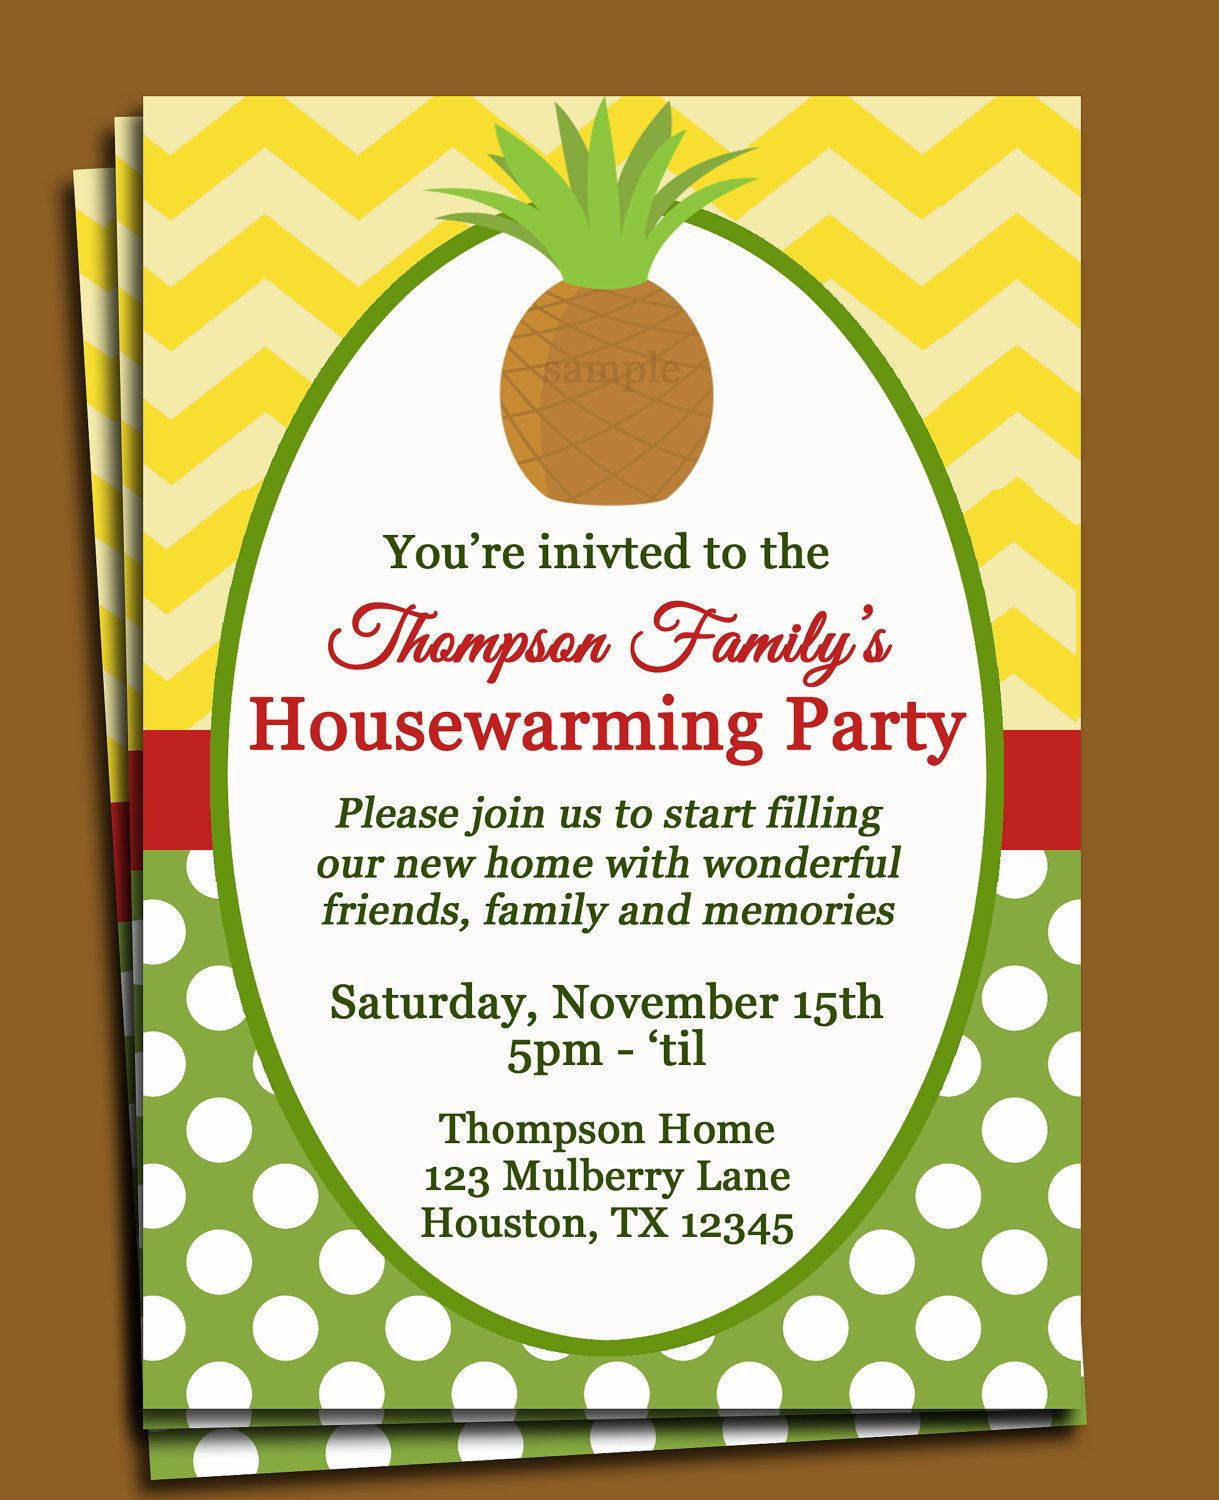 Housewarming invitation wording google search housewarming pinterest housewarming - Gruhapravesam gifts ideas ...